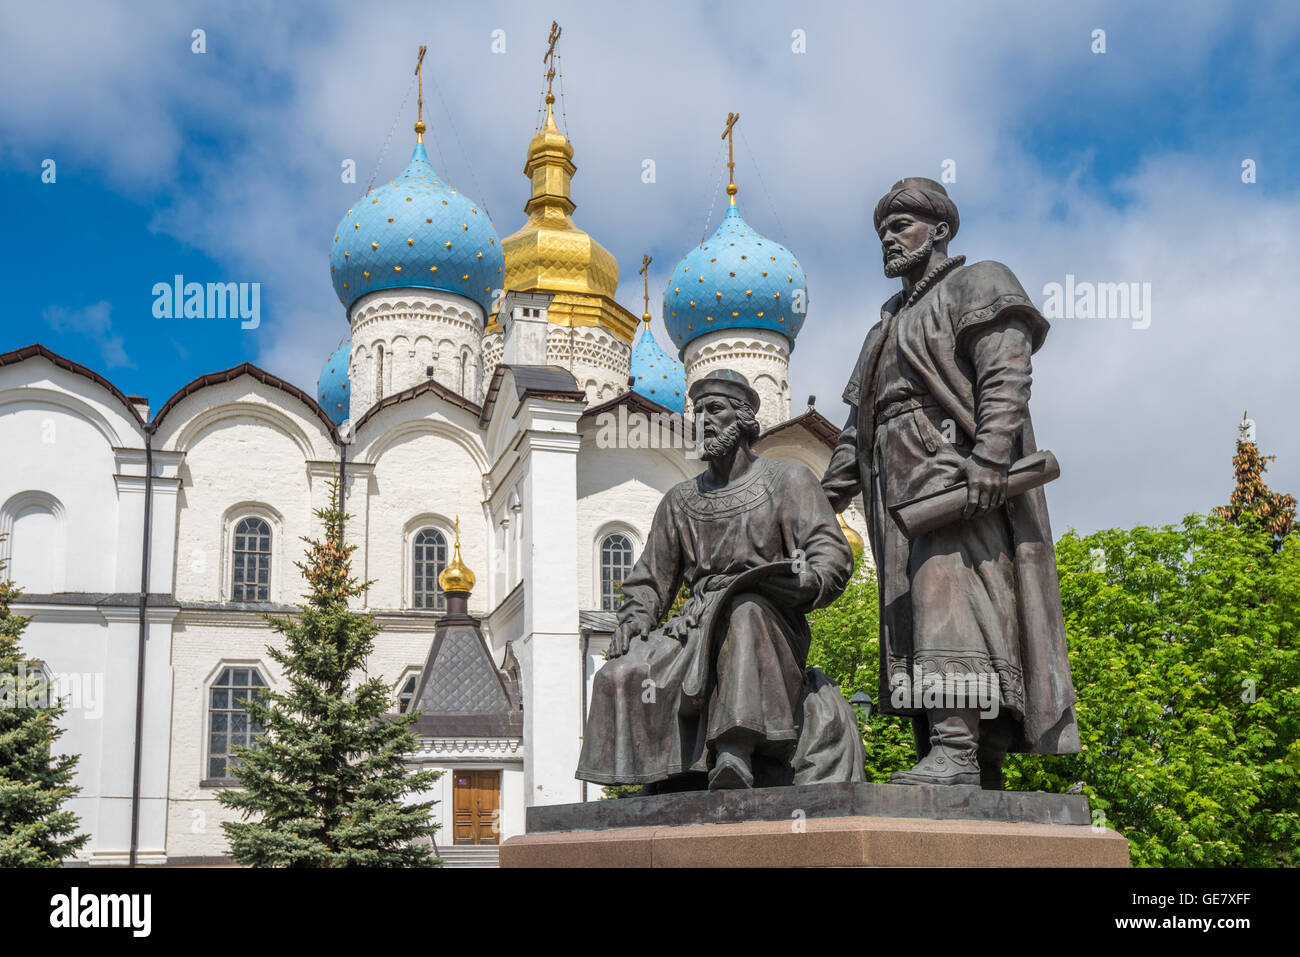 Statues of architects, Kazan Kremlin, Russia - Stock Image